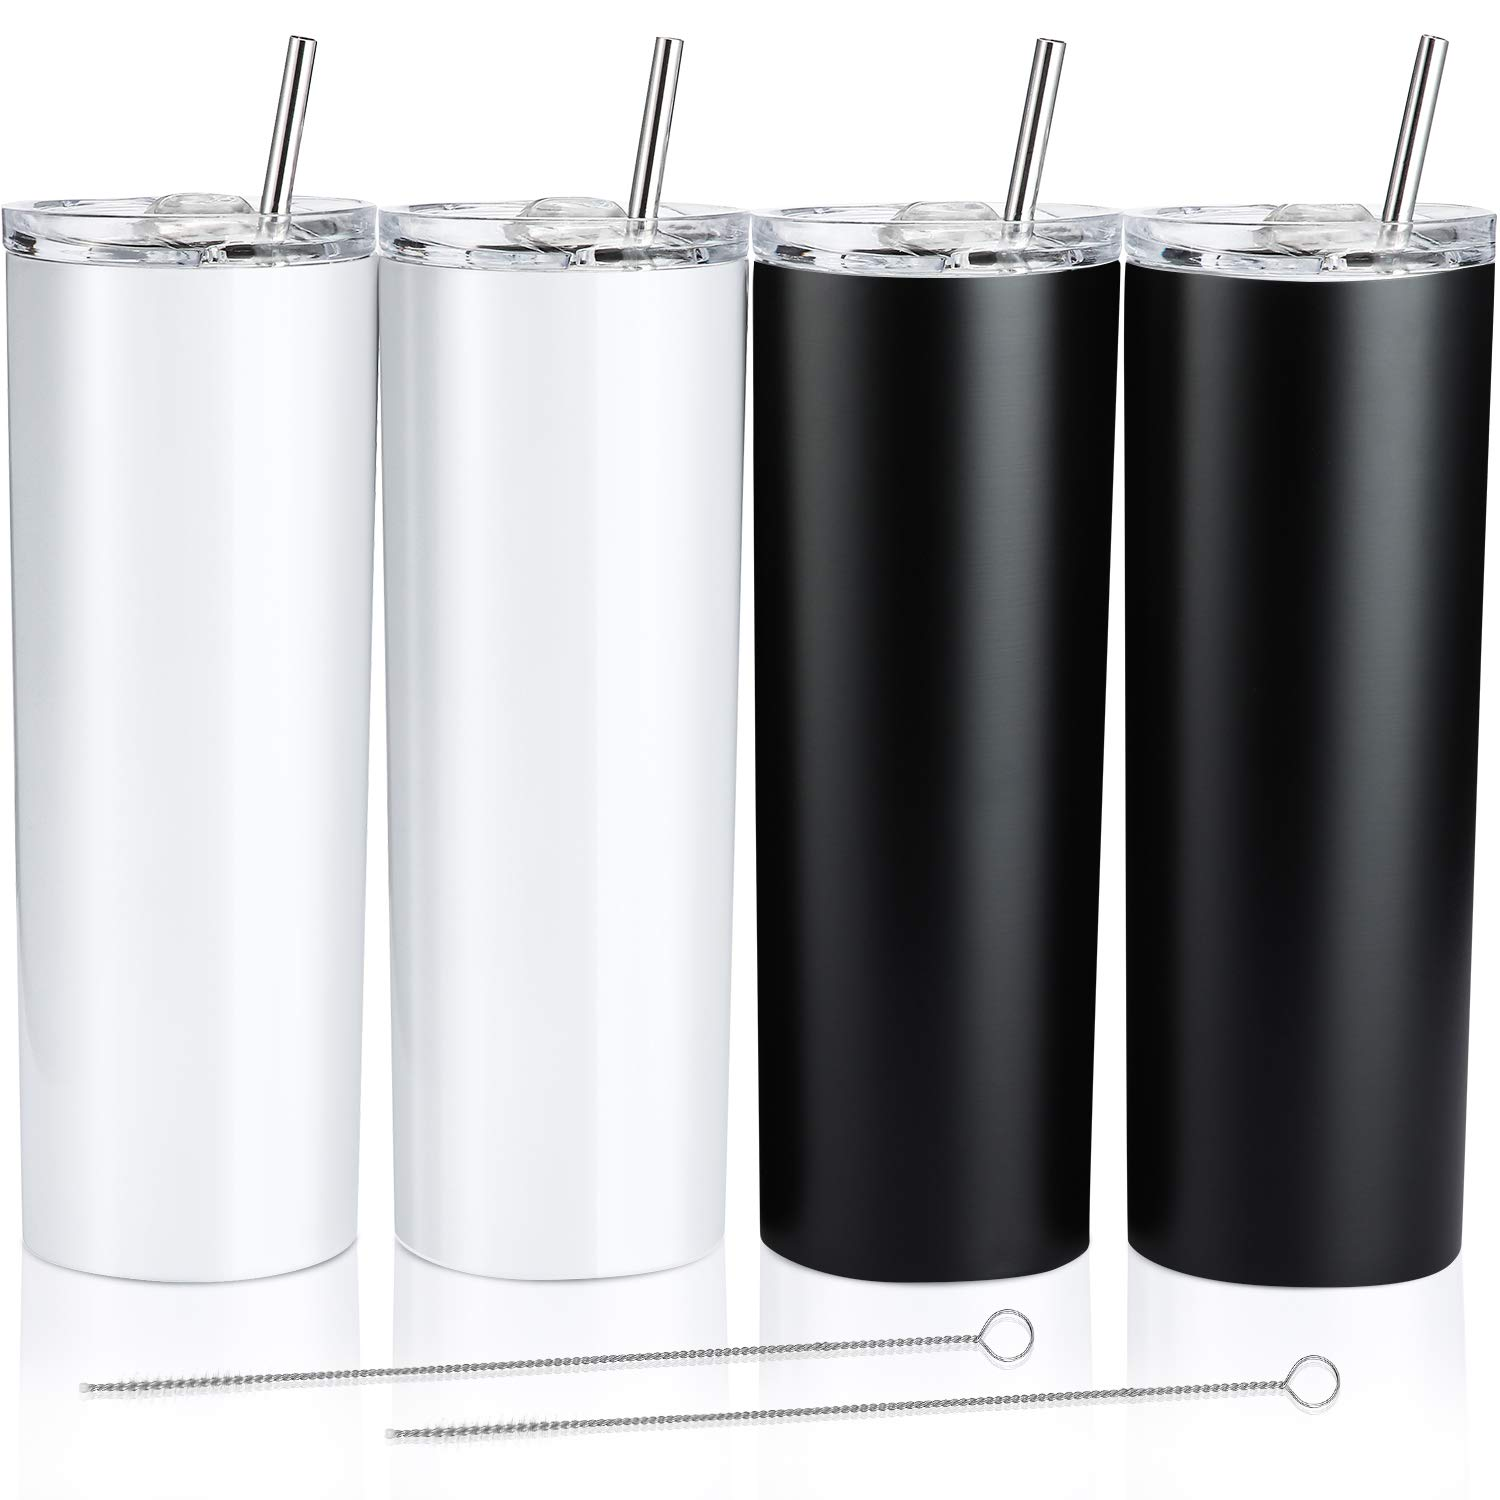 4 Pack Classic Tumbler Stainless Steel Double-Insulated Water Tumbler Cup with Lid and Straw Vacuum Travel Mug Gift with Cleaning Brush (Pearl White, Matte Black, 20 oz)